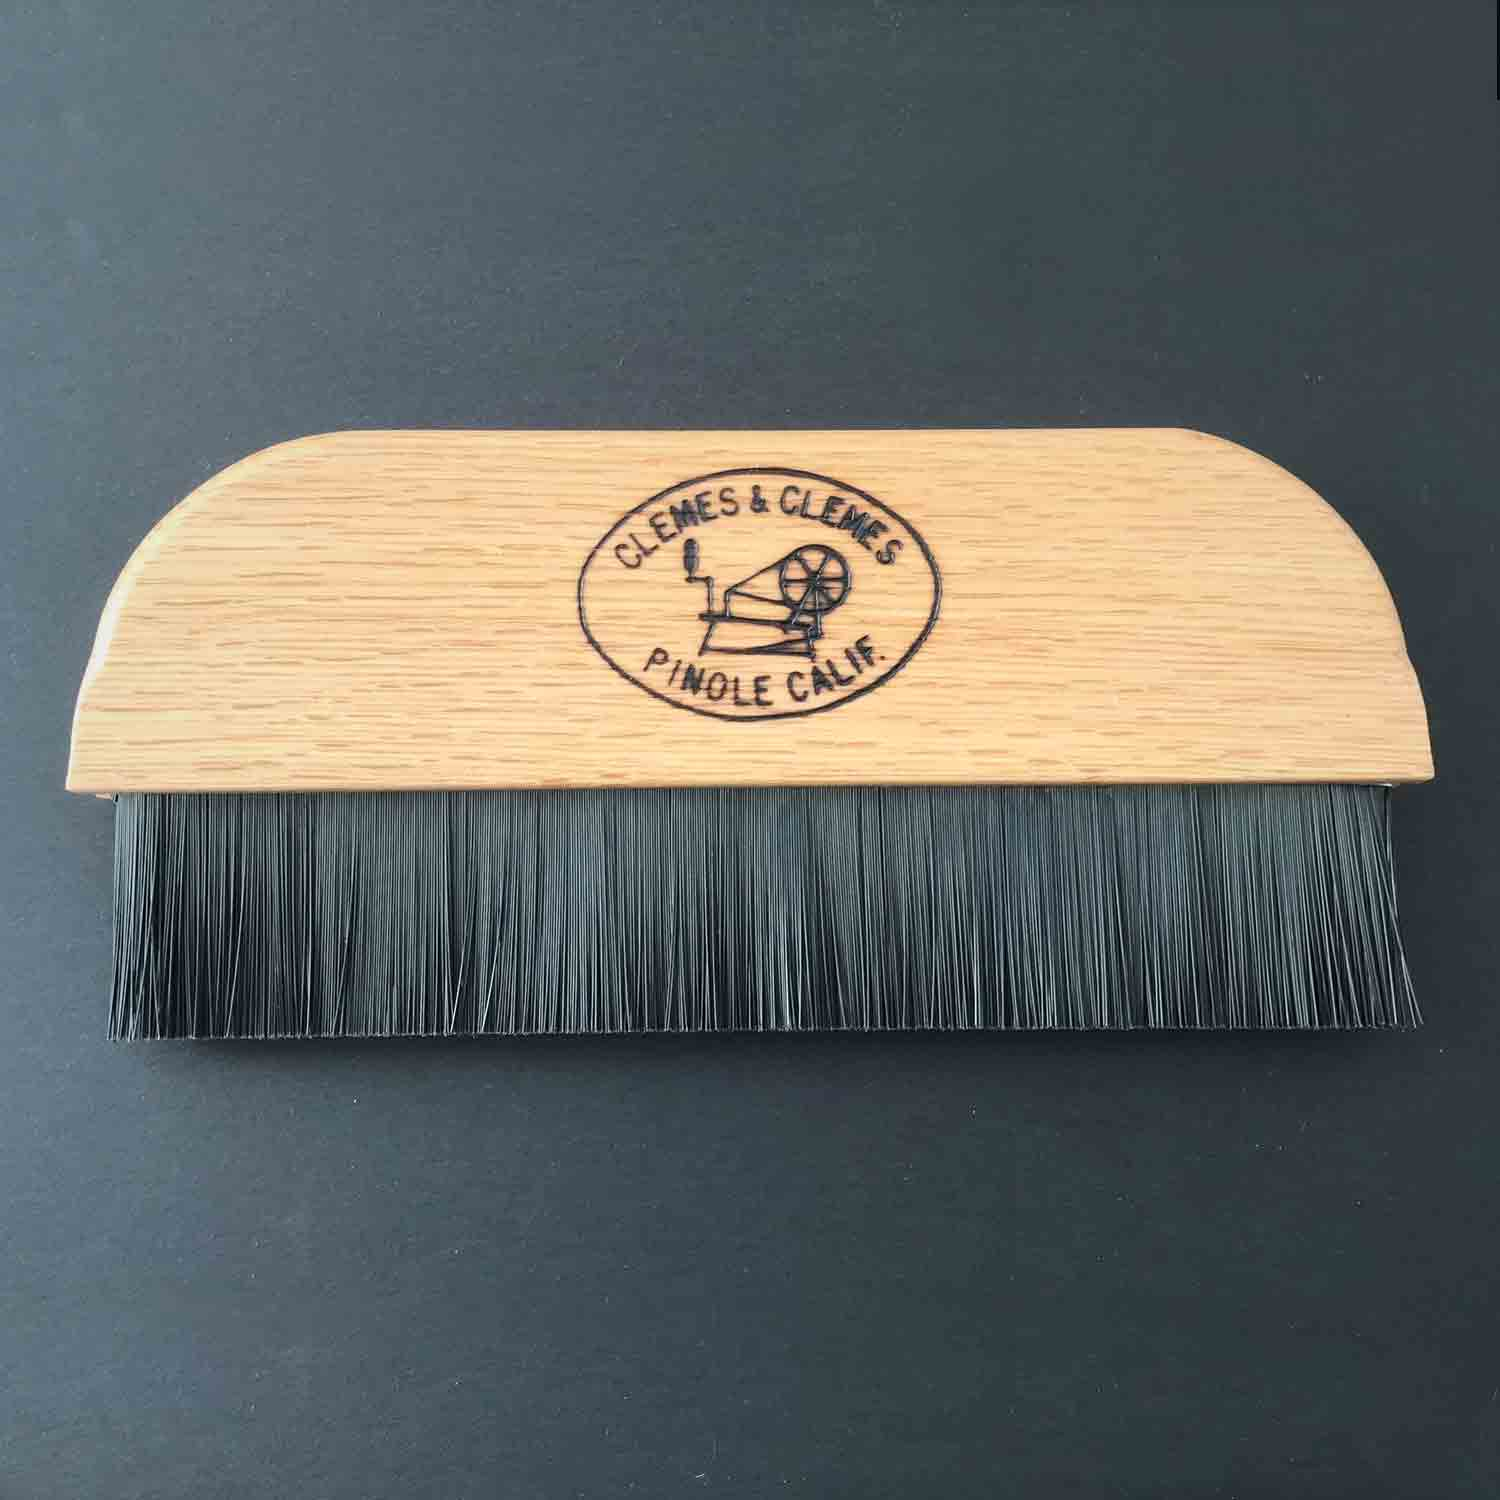 Clemes & Clemes Packing Brush